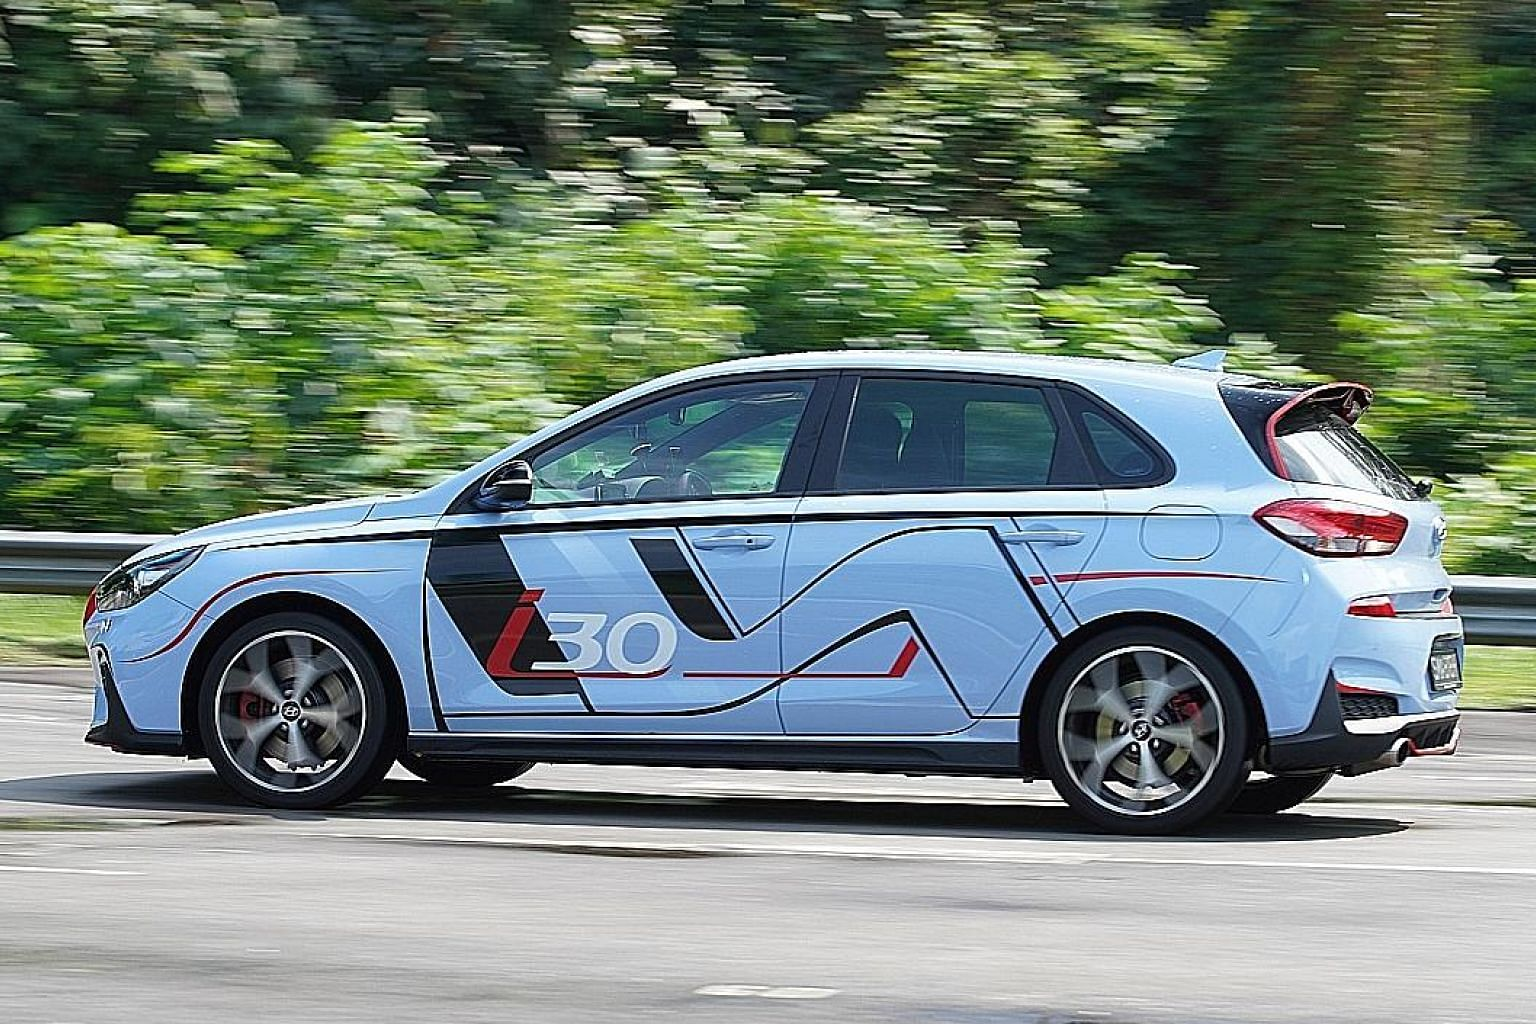 The Hyundai i30 N is equipped with a 2-litre four-cylinder turbocharged motor, kicking out 250hp and 353Nm of torque to the front wheels through a six-speed manual gearbox.